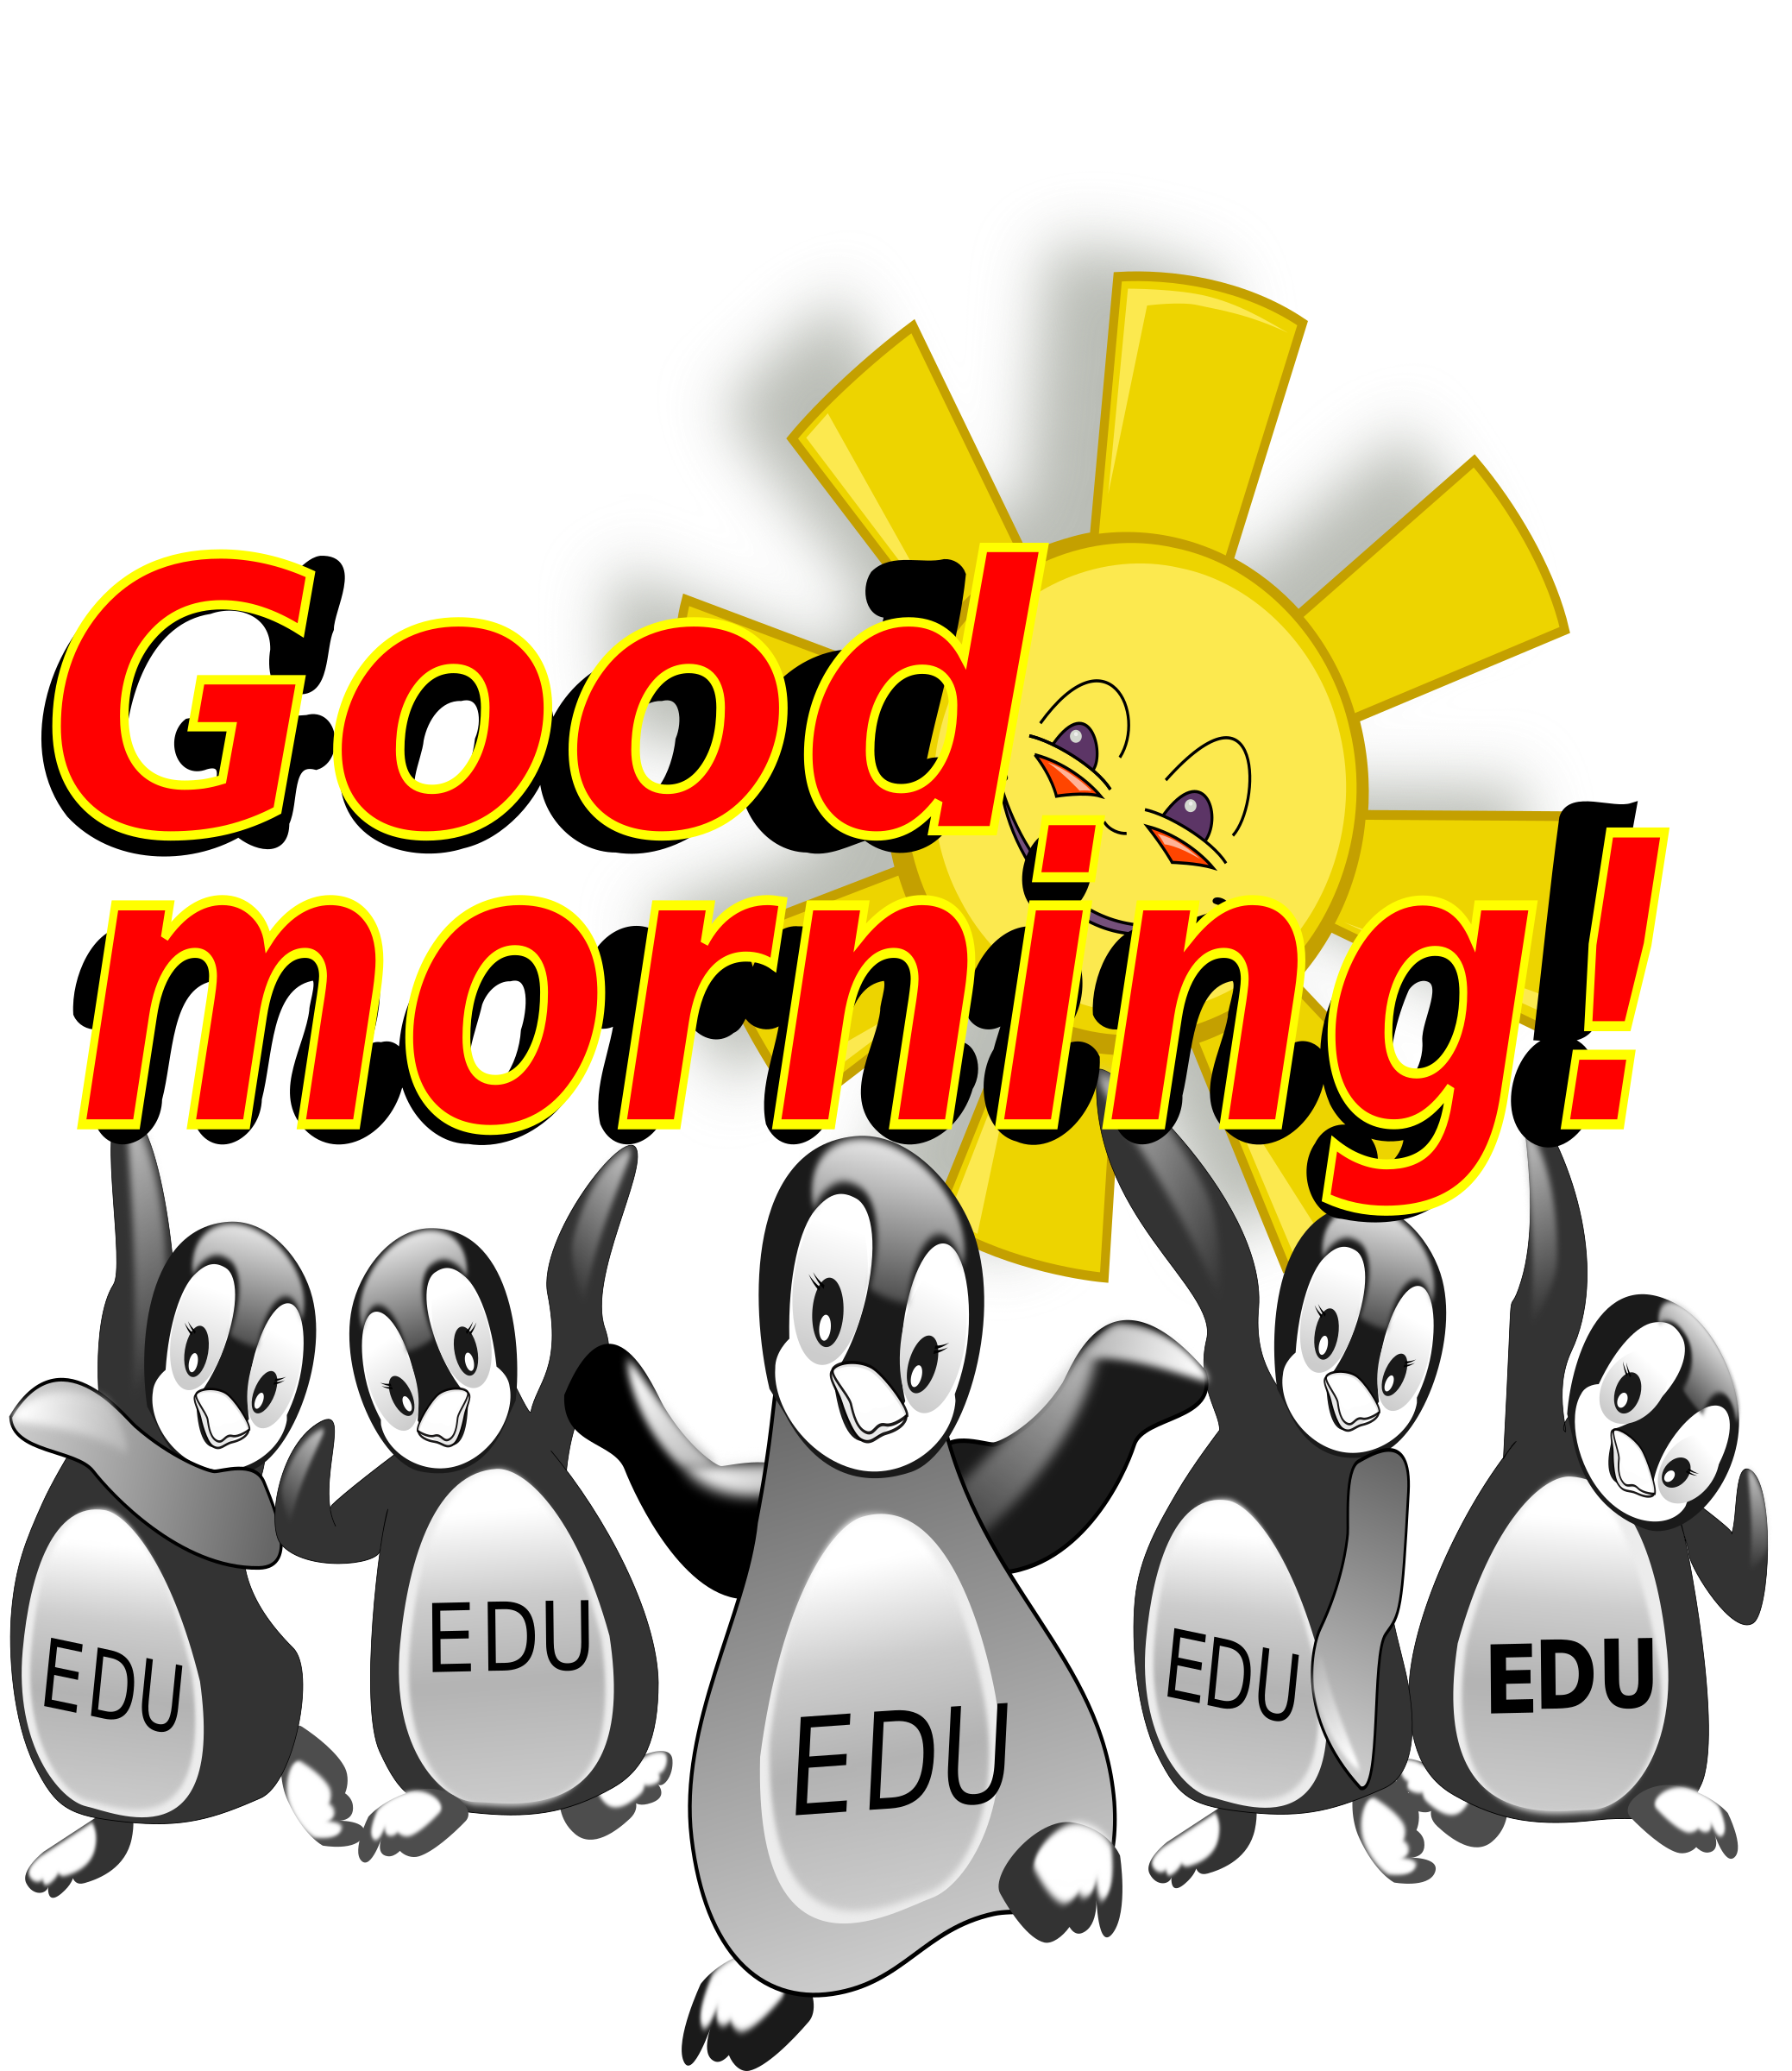 Wednesday clipart good morning. Penguin big image png